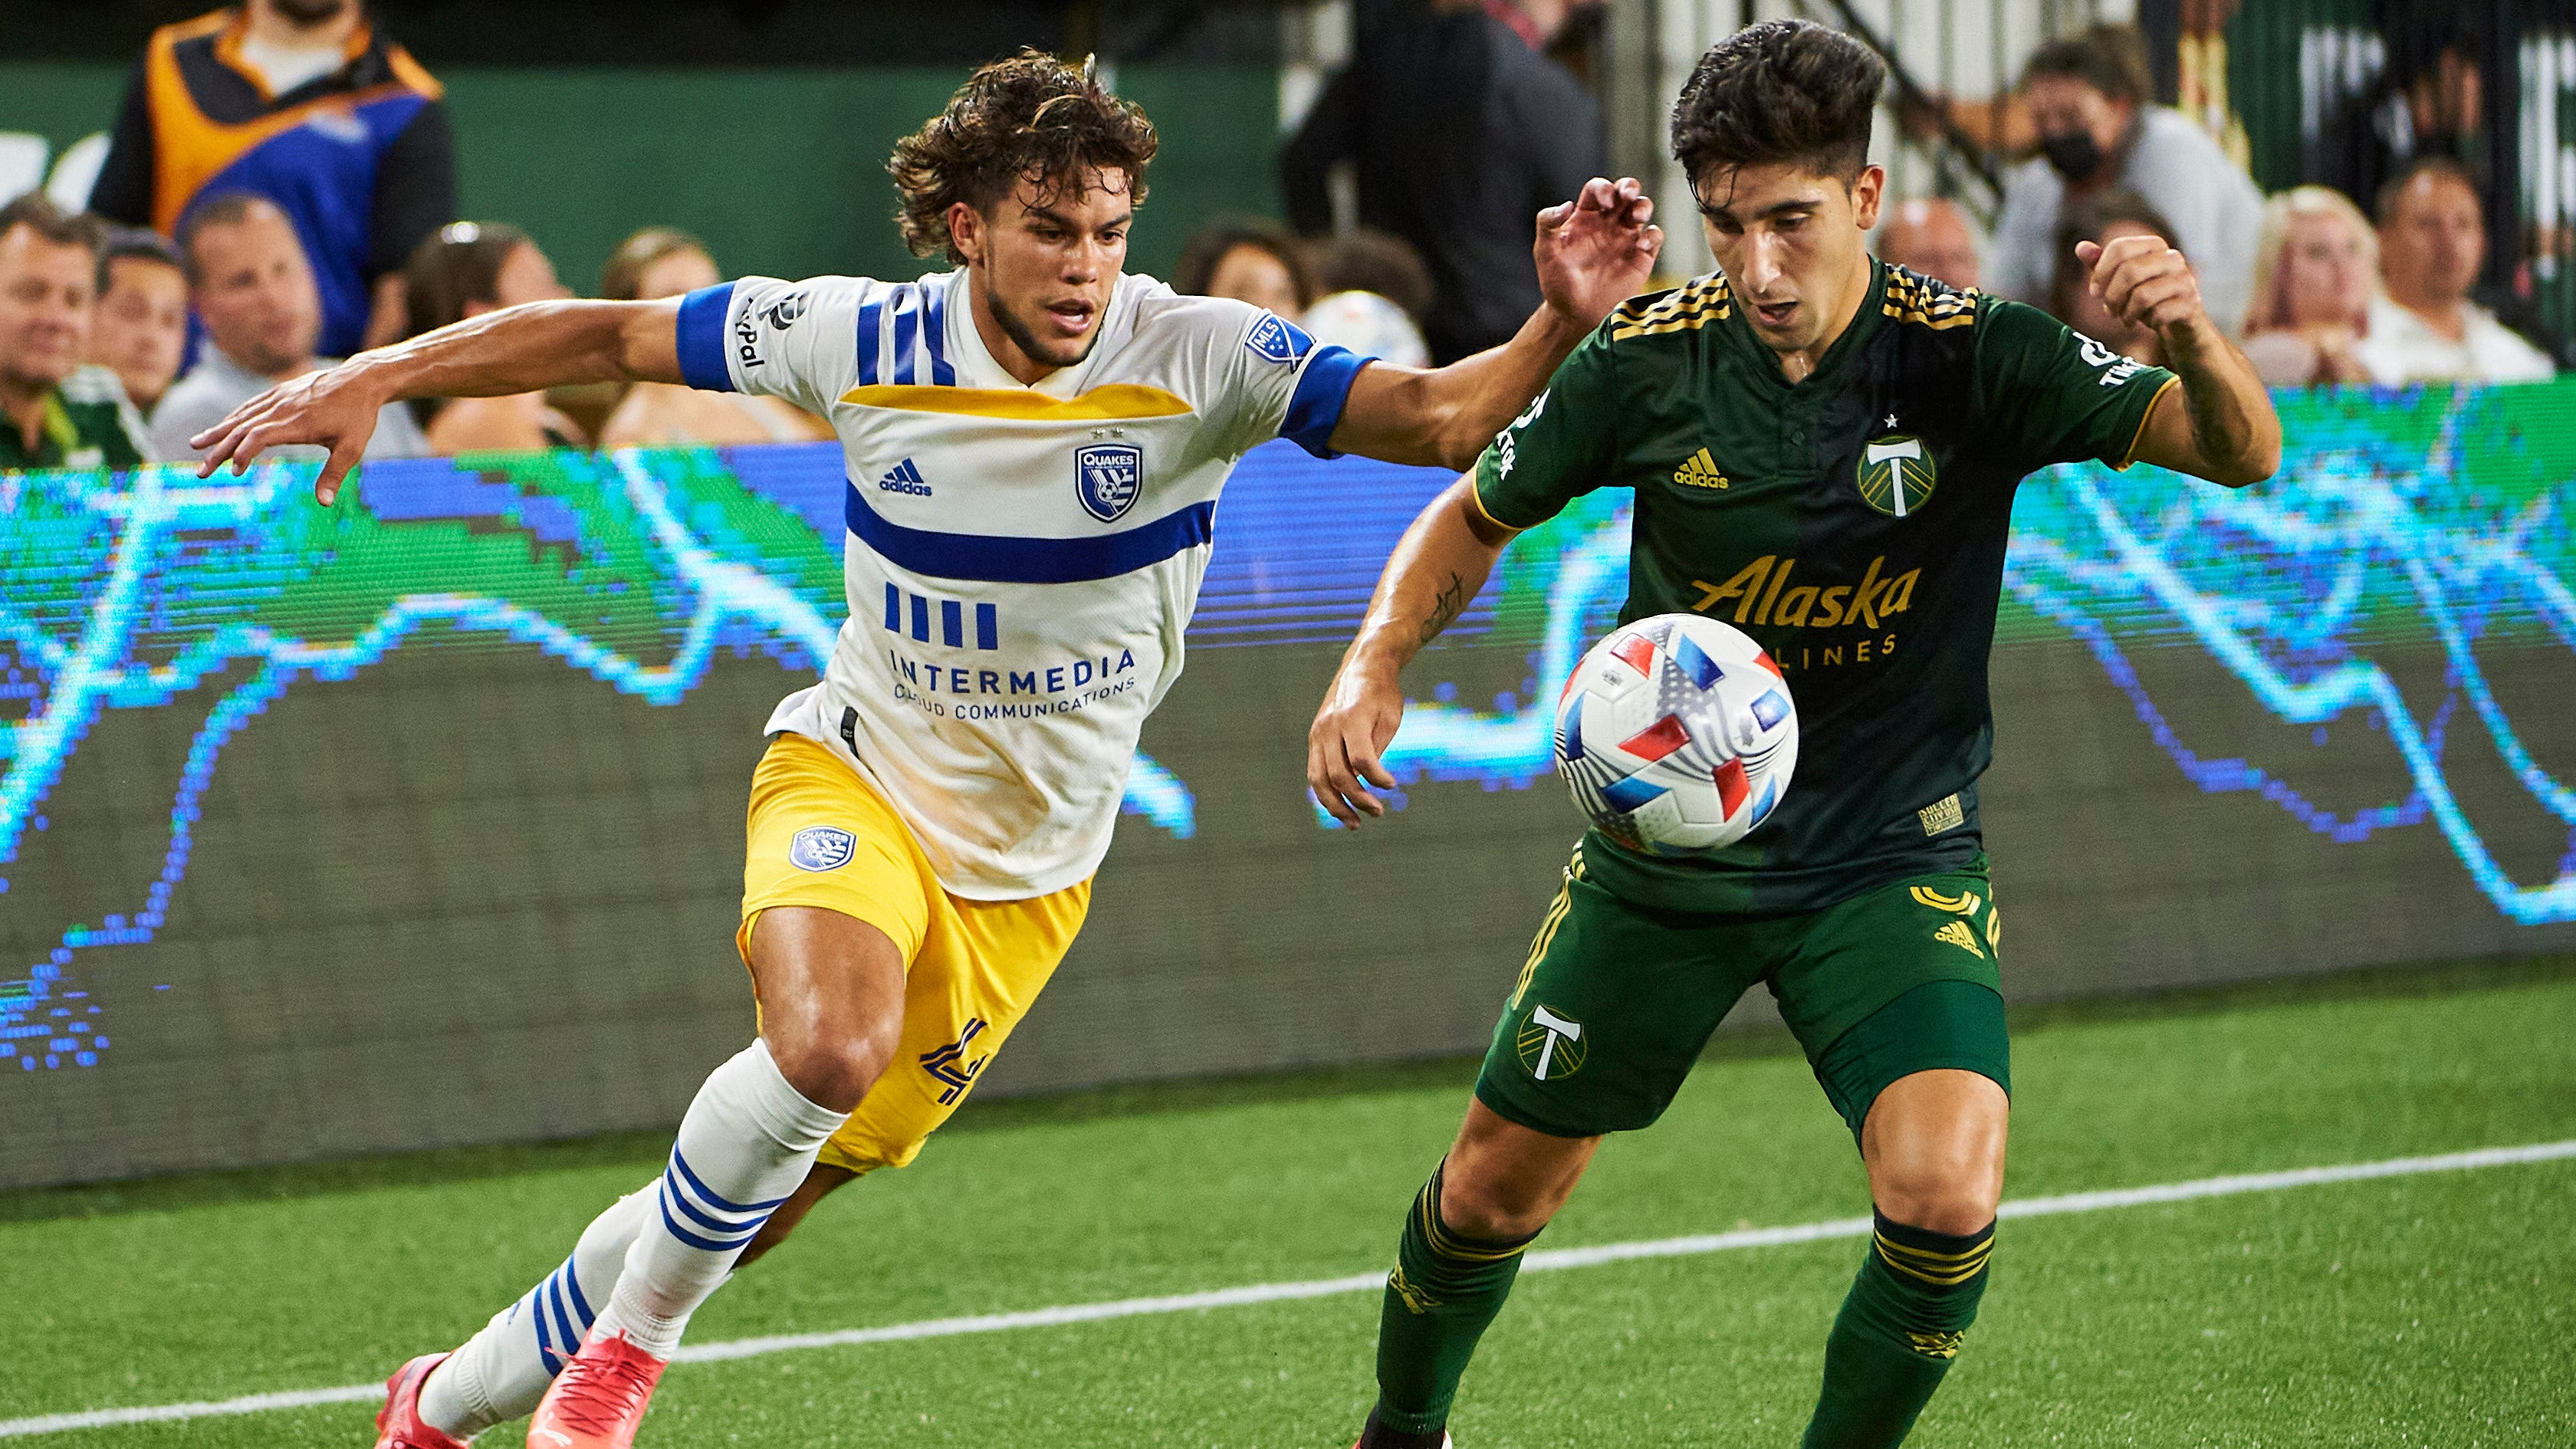 The San Jose Earthquakes' 17-year-old forward Cade Cowell (44) was the youngest player named to the MLS All-star team.